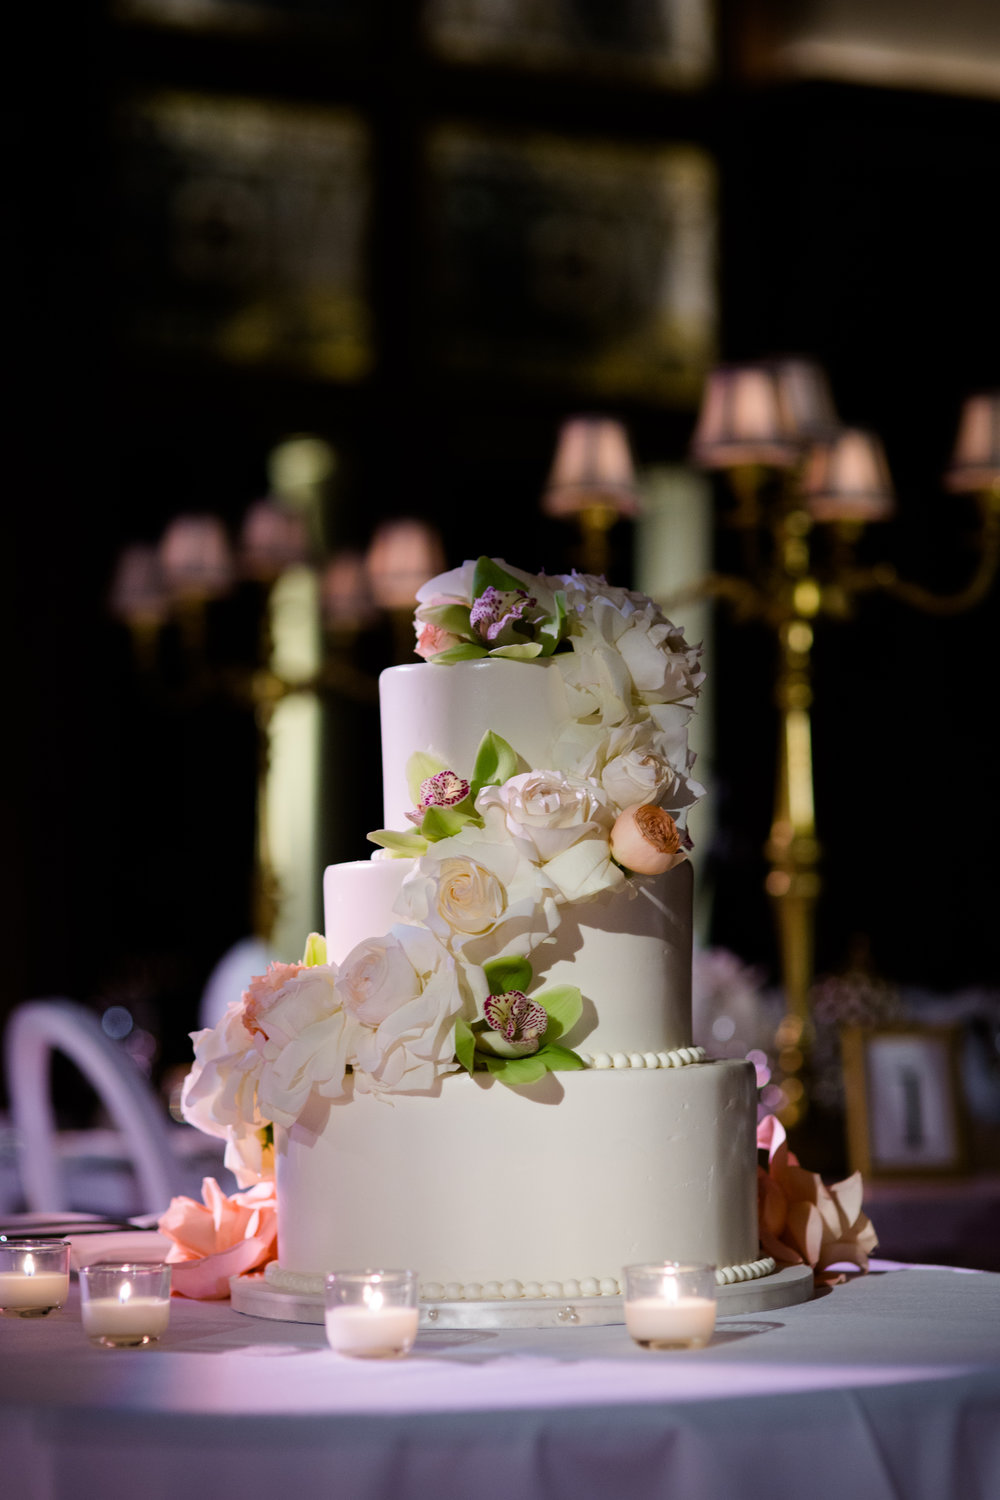 Elegant southern inspired wedding cake at Chicago Athletic Association Hotel